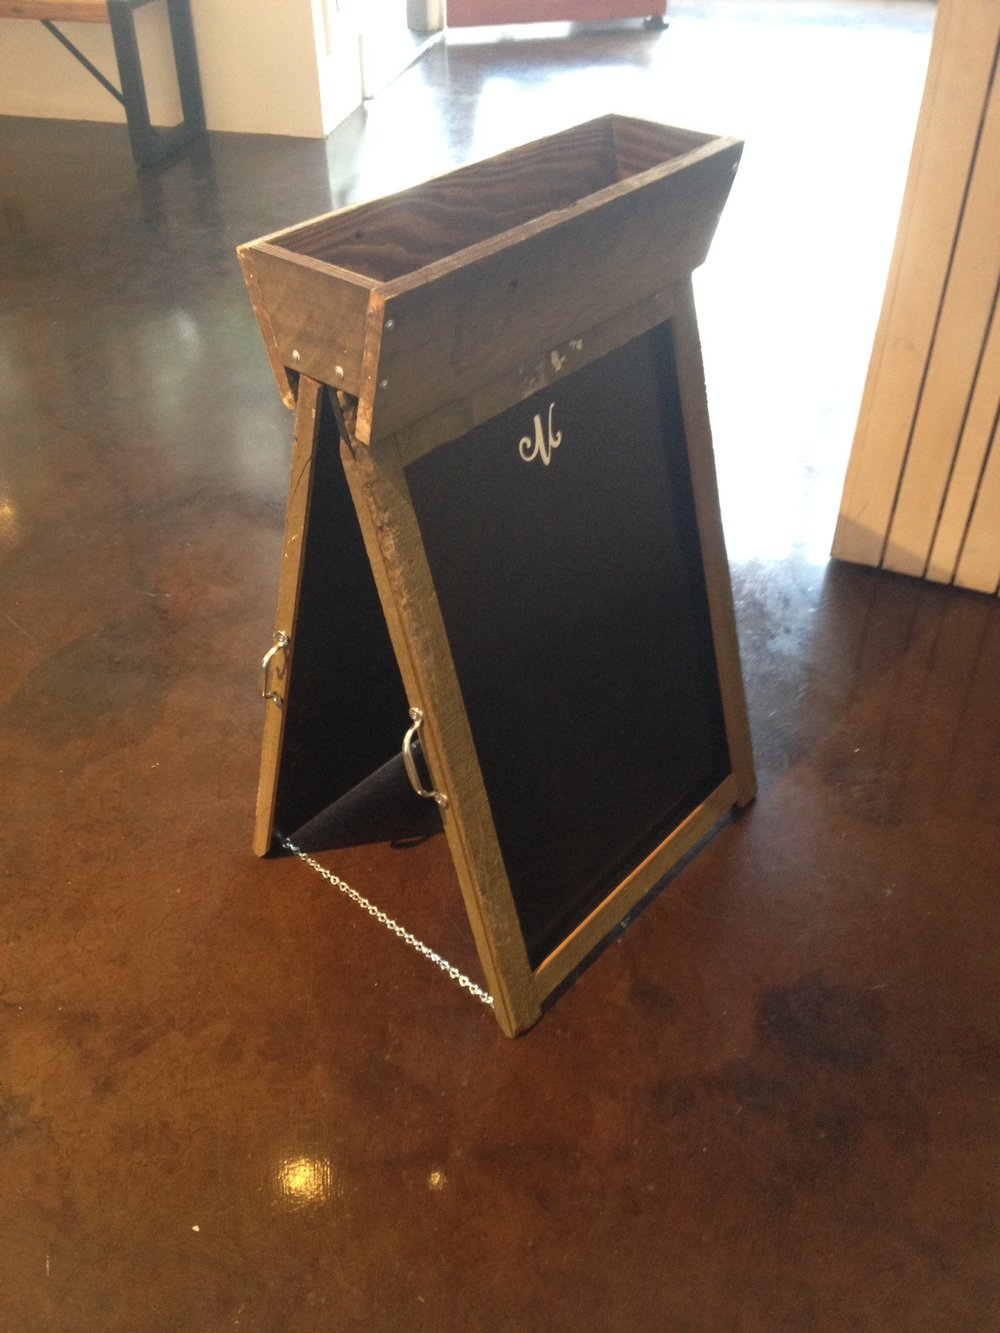 Travel/Trade Show Chalk Board w/ Removable Planter